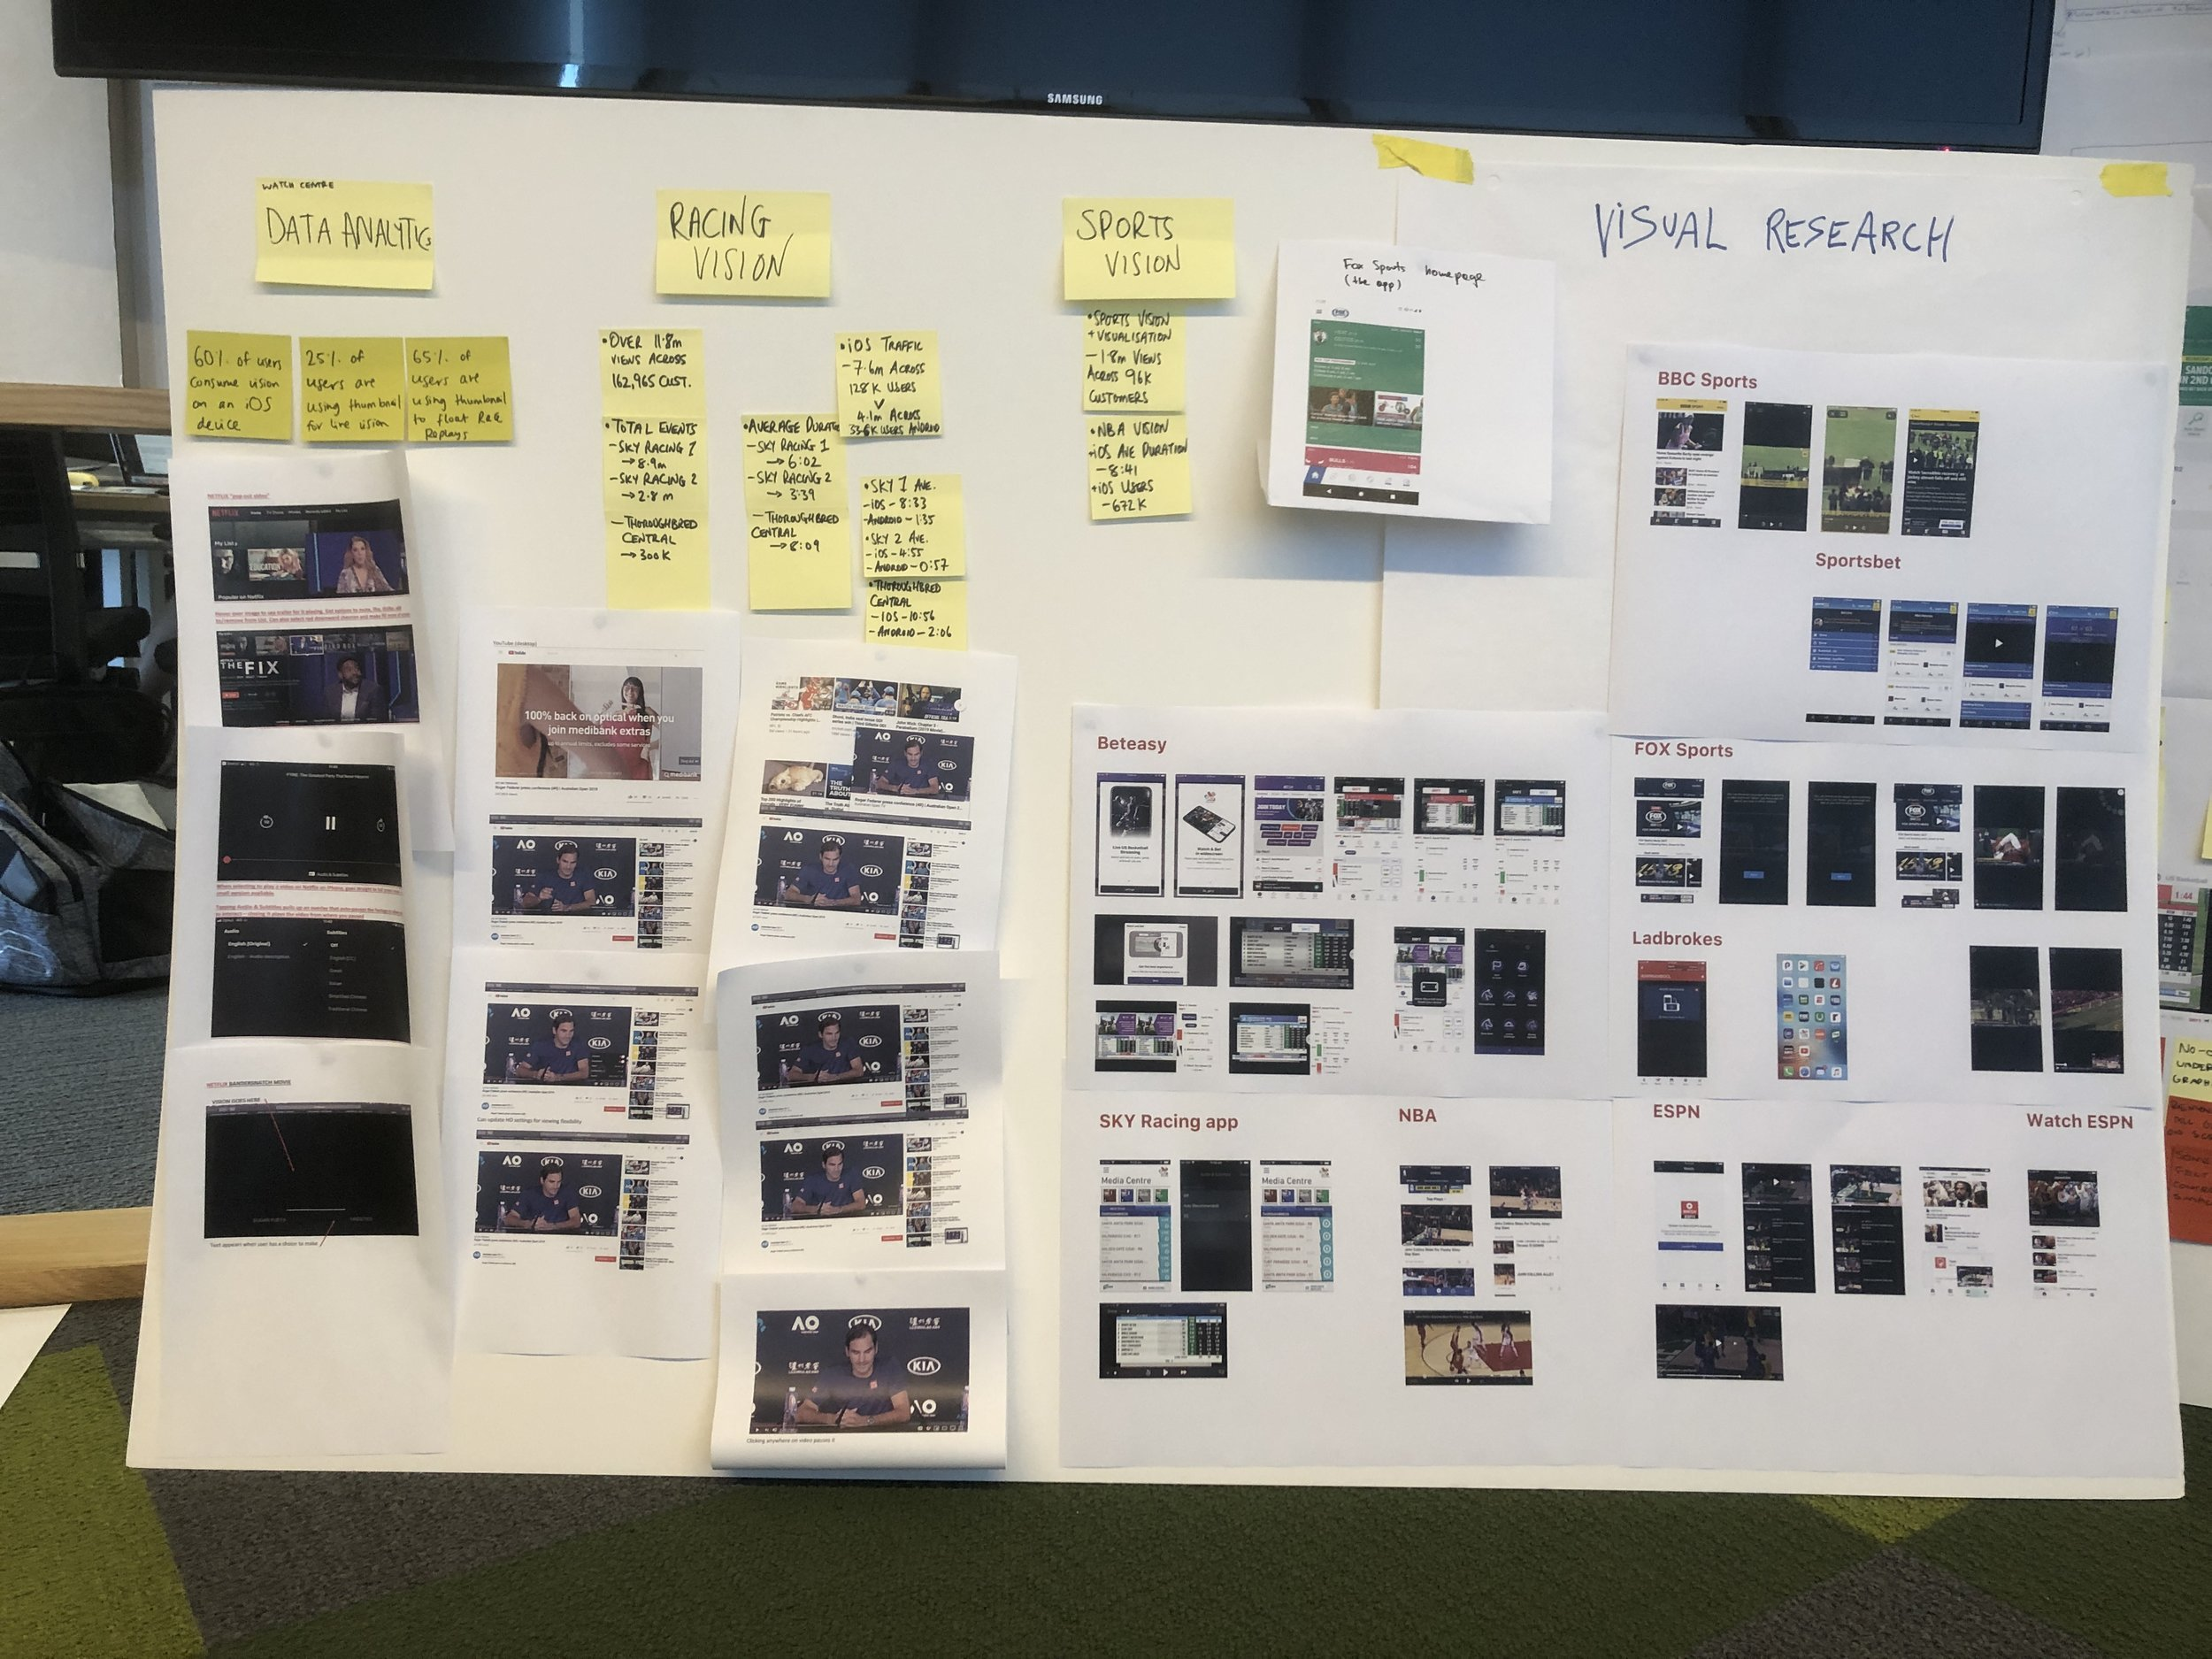 Watch and Bet Design Sprint - Coming soon